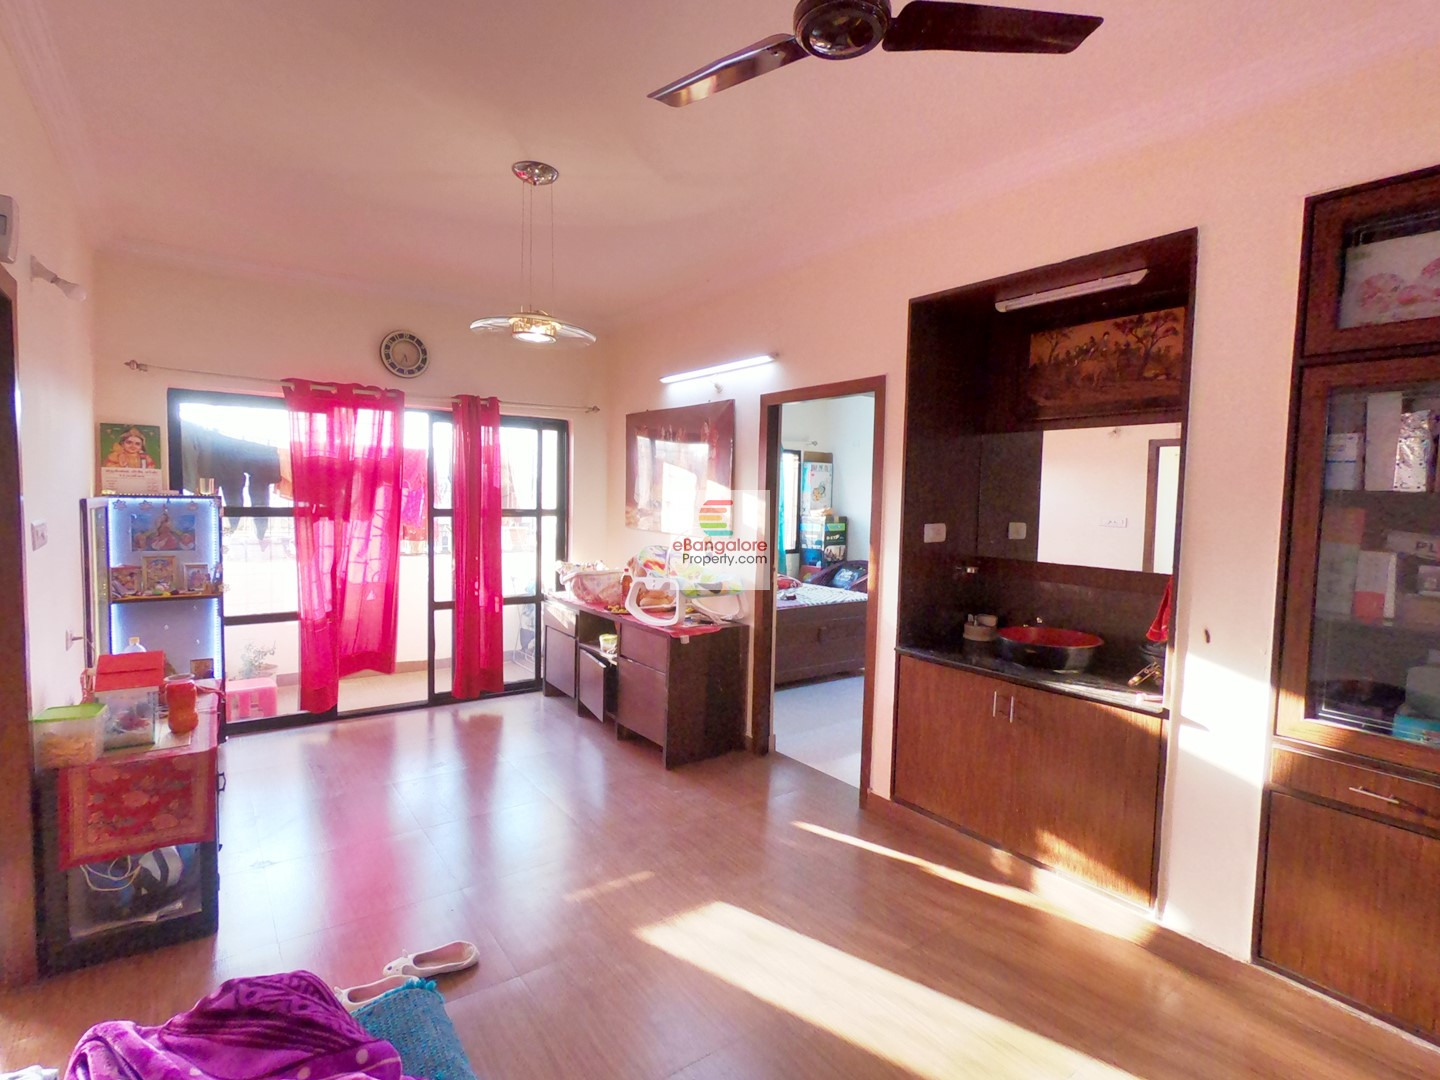 Yemalur HAL Road – 3BHK Semifurnished Flat For Sale – Near HAL Airport